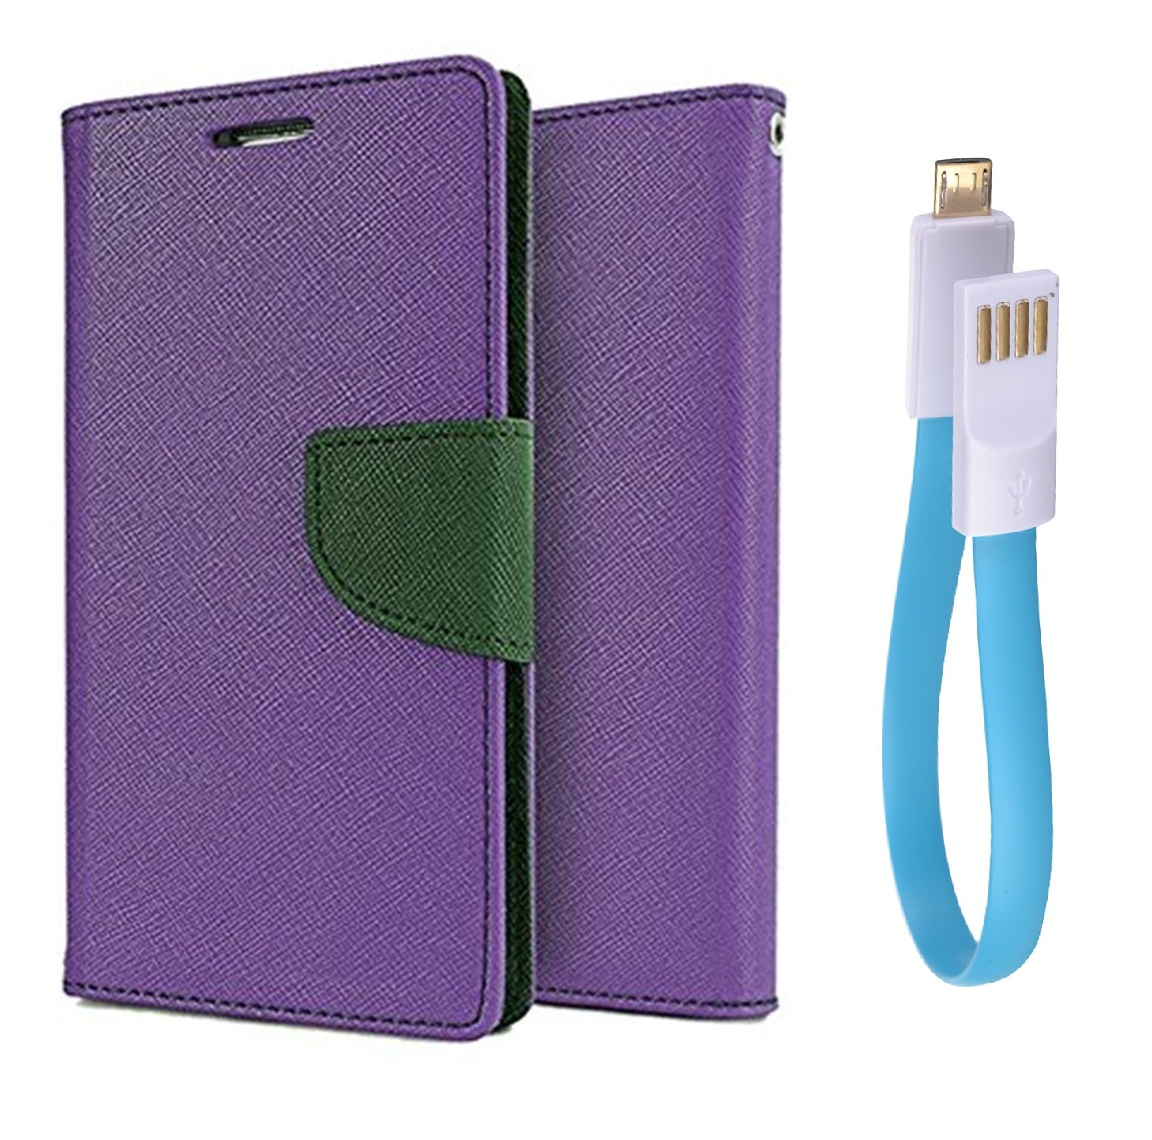 Motorola Moto E3 Power / Cover For Moto E3 Power   PURPLE With usb cable